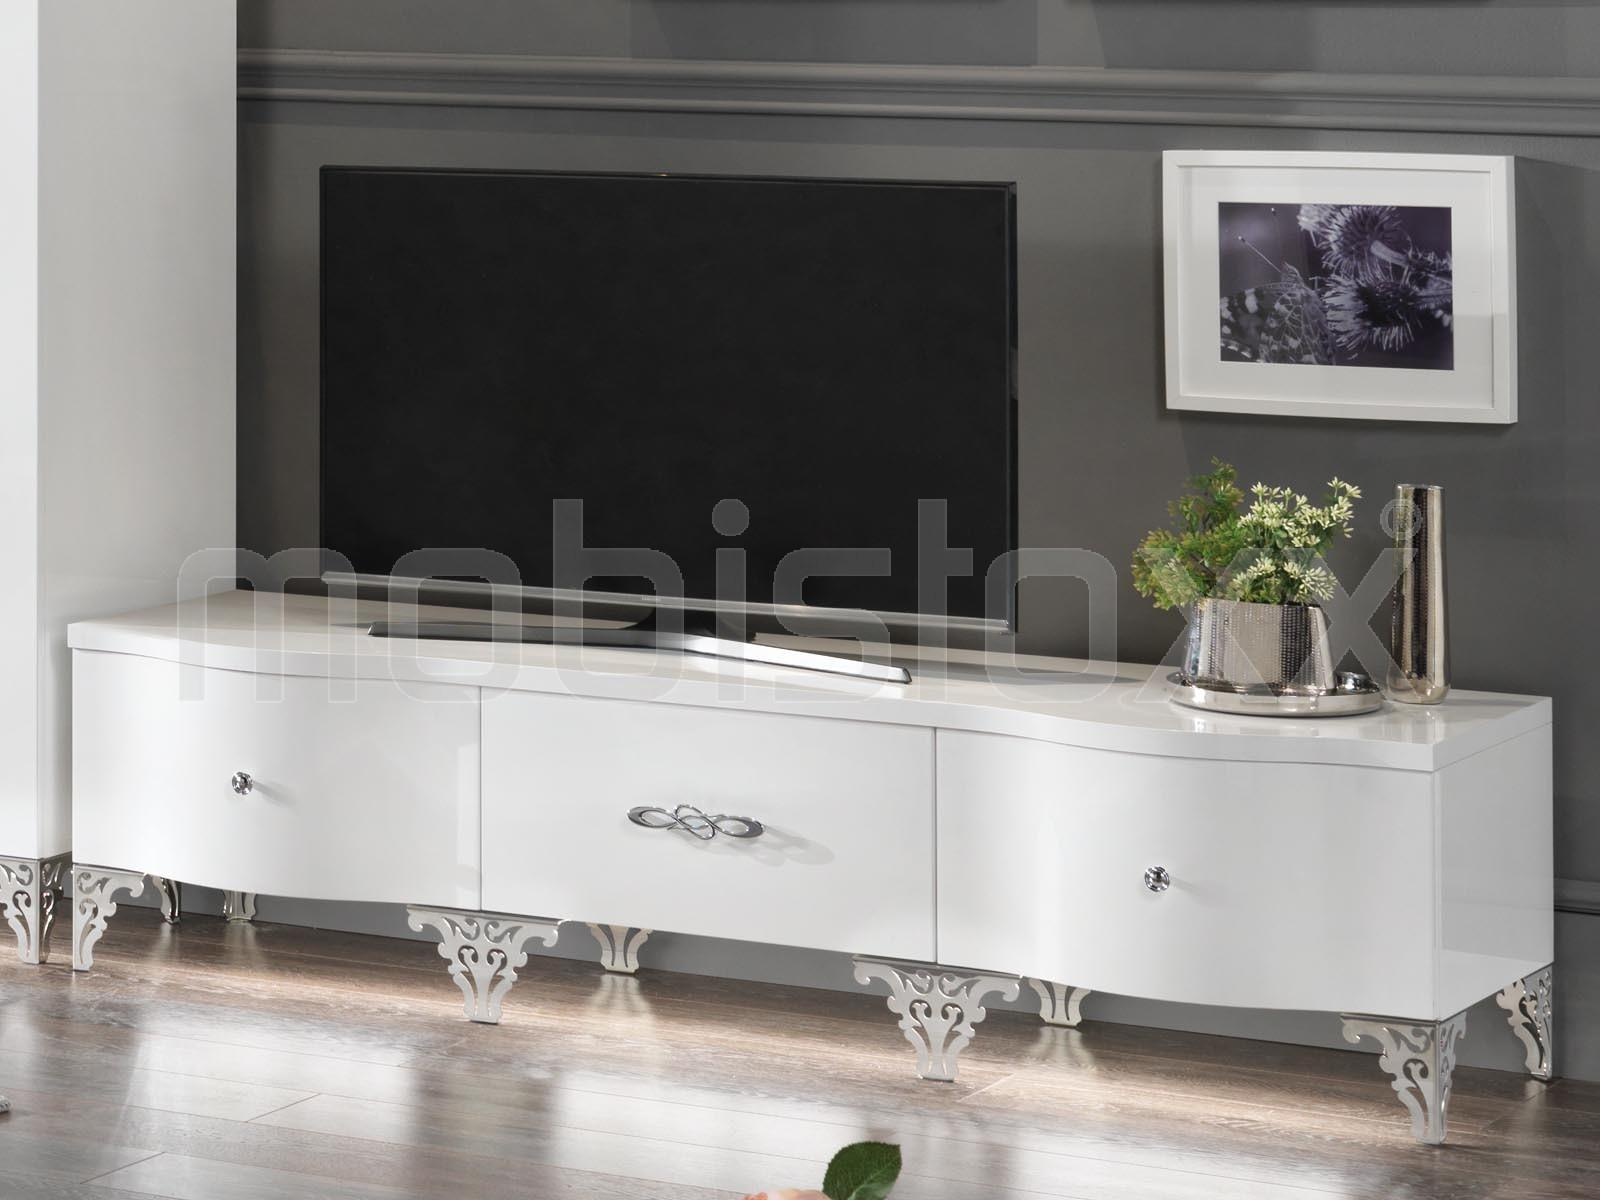 Mobistoxx Awesome Meuble Tvhifi Cosmos Portes Niches Chez  # Meuble Tv California